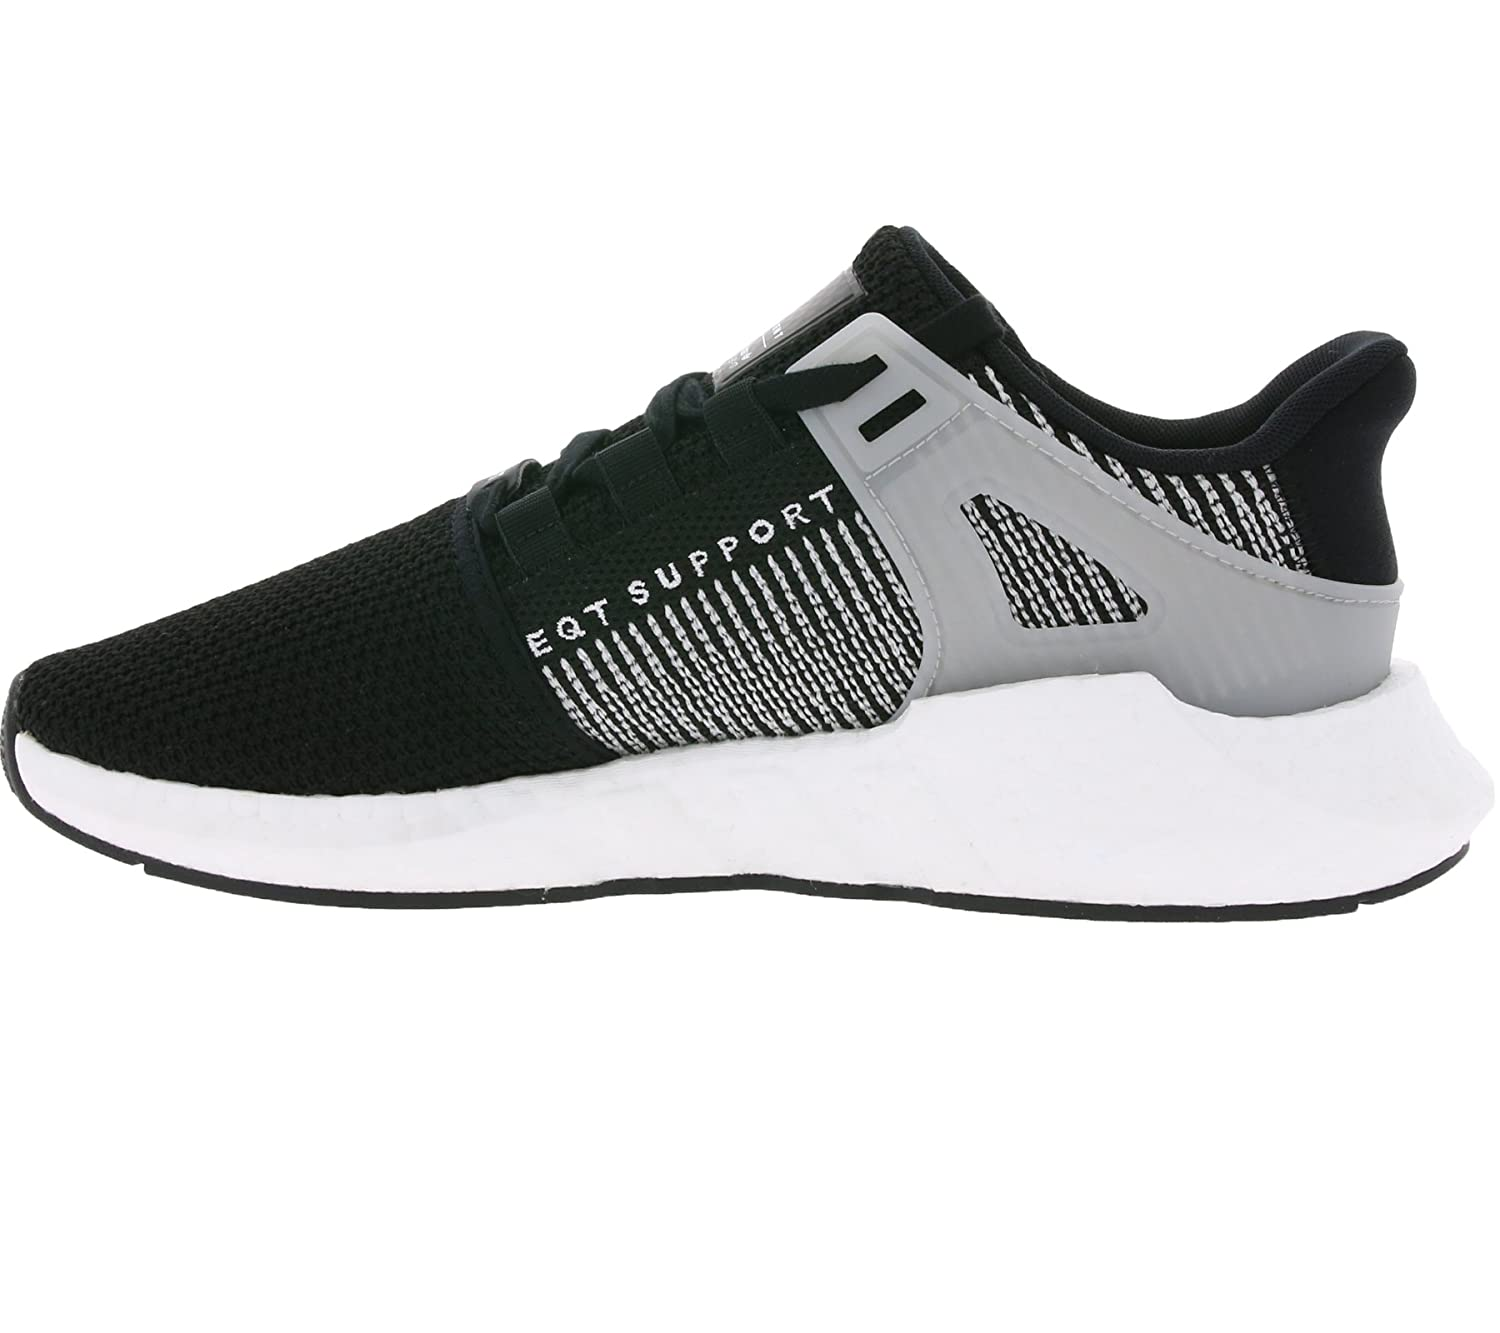 new concept 7142c 89016 Amazon.com adidas EQT Support 9317 - BY9509 - Color White-Black - Size  12.0 Shoes